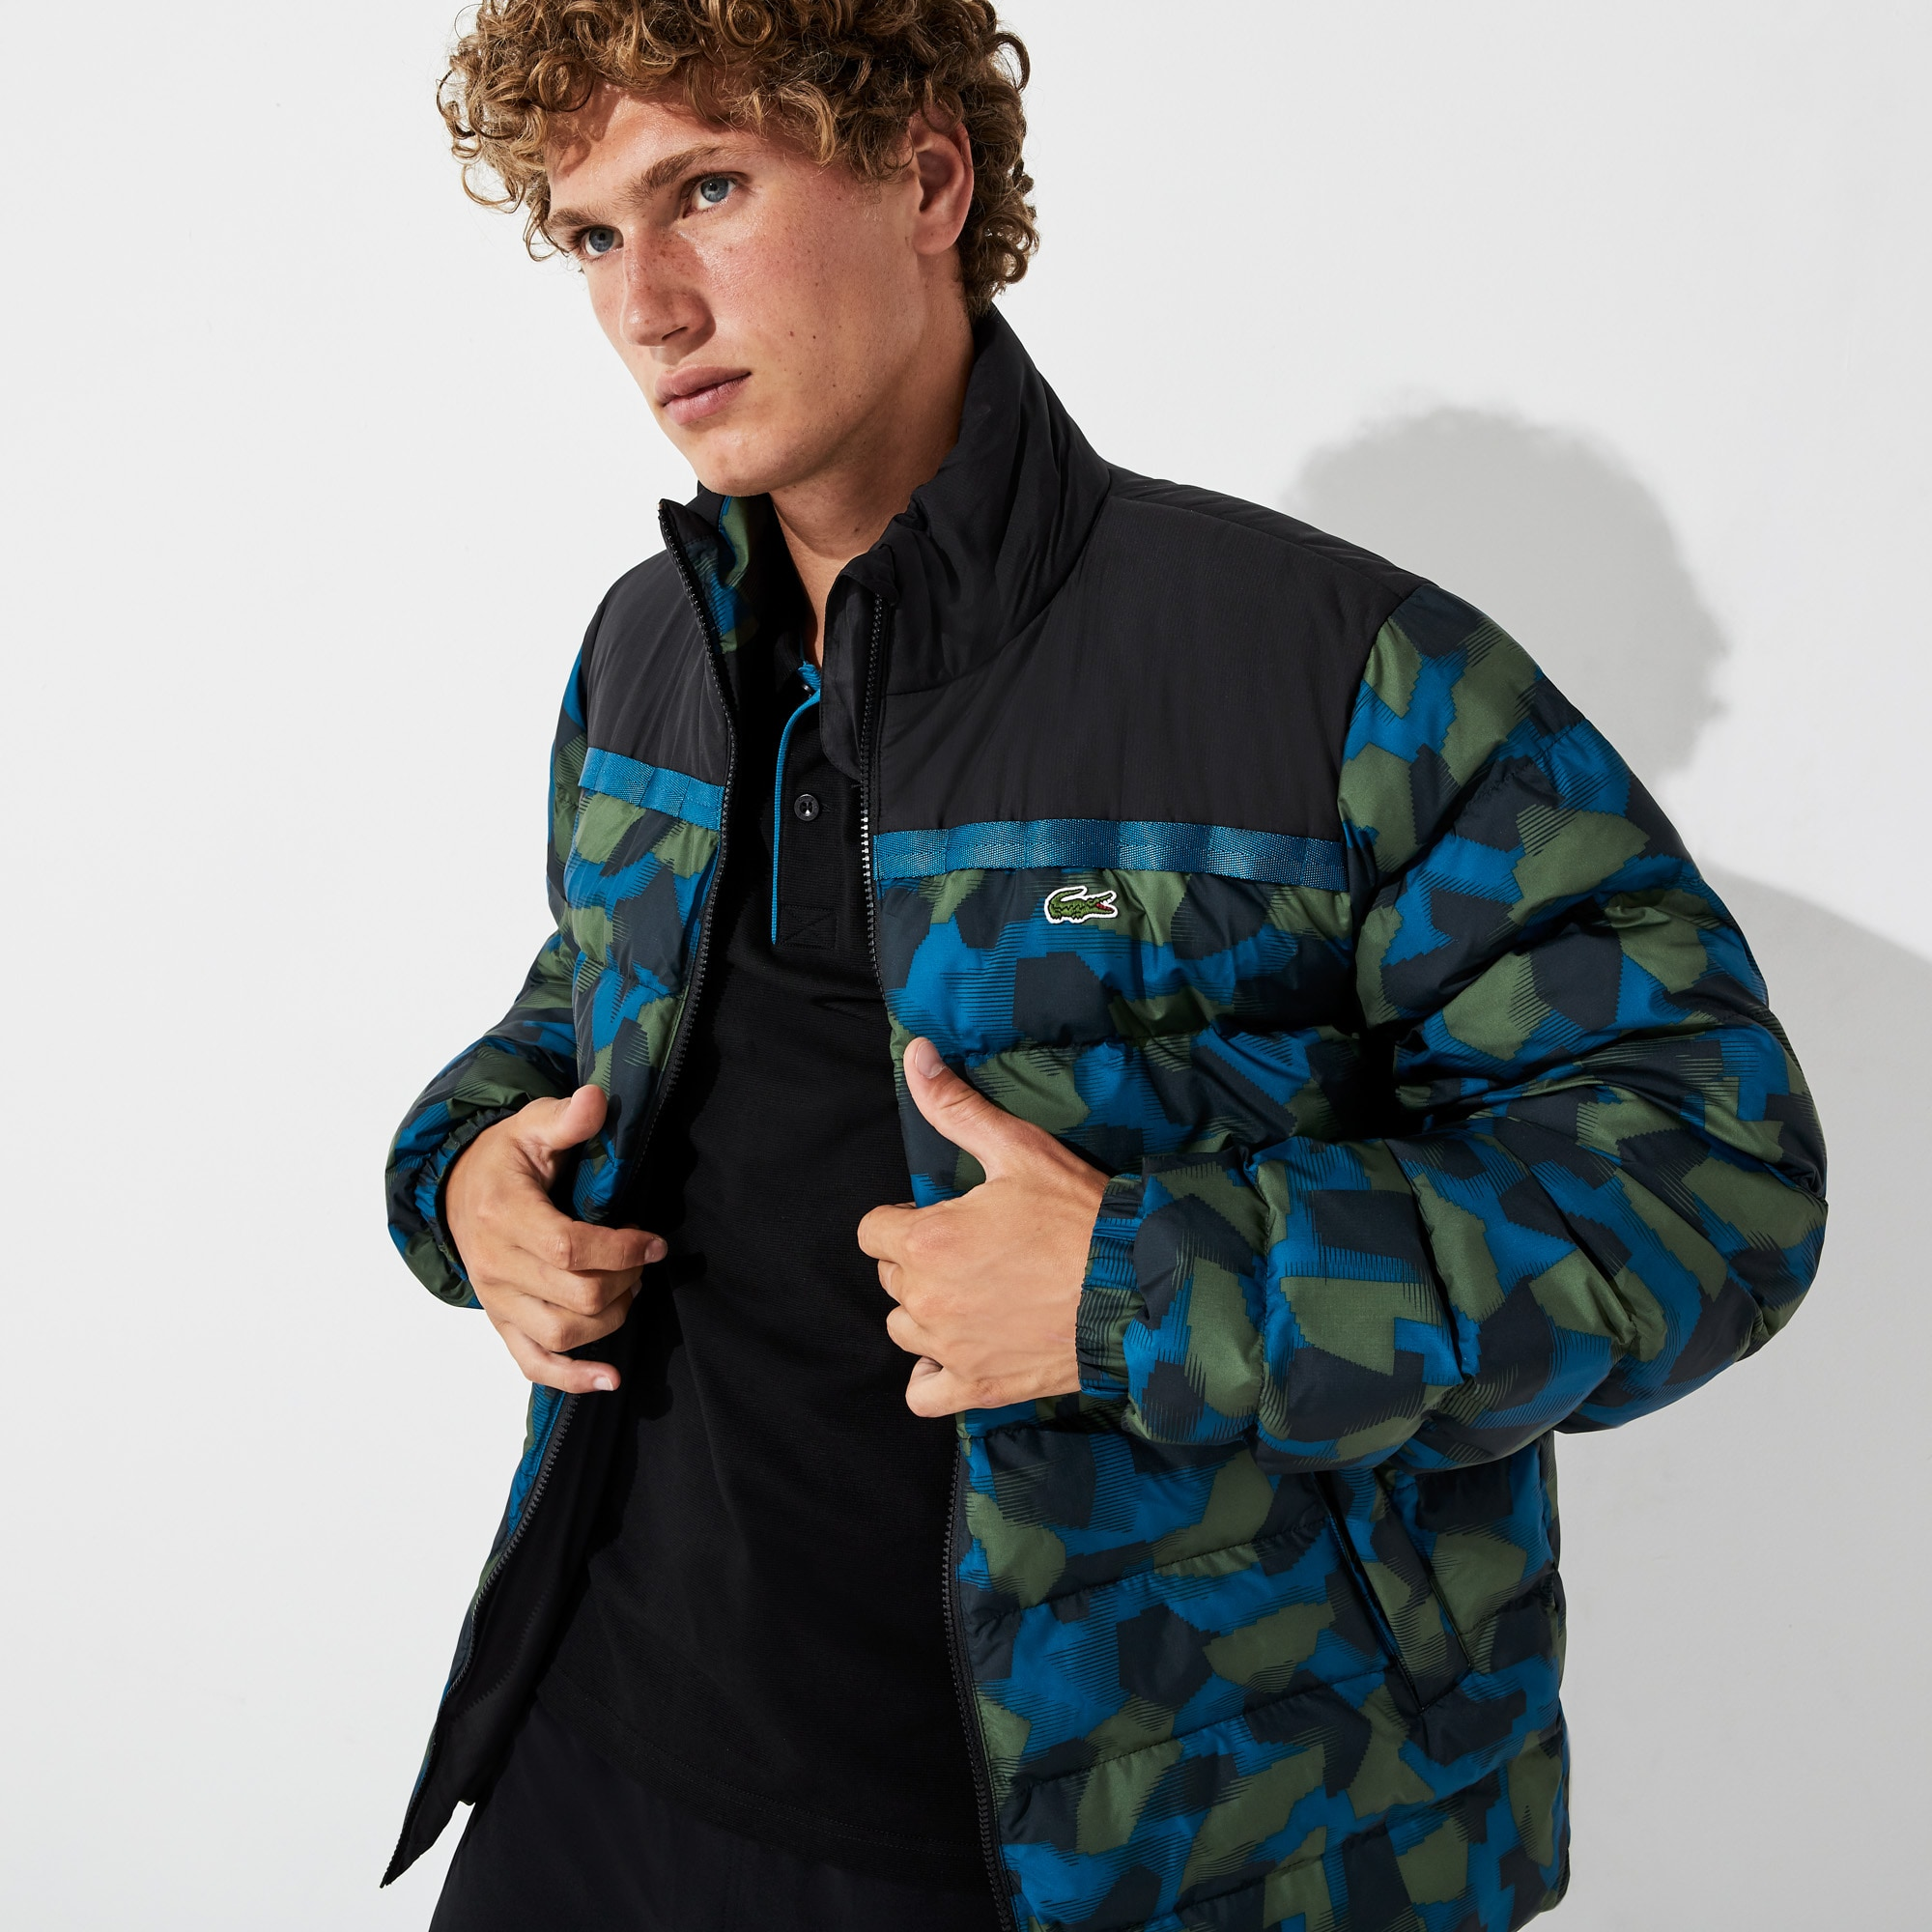 d7bafb4d5 Men's Jackets and Coats | Lacoste Outerwear | LACOSTE